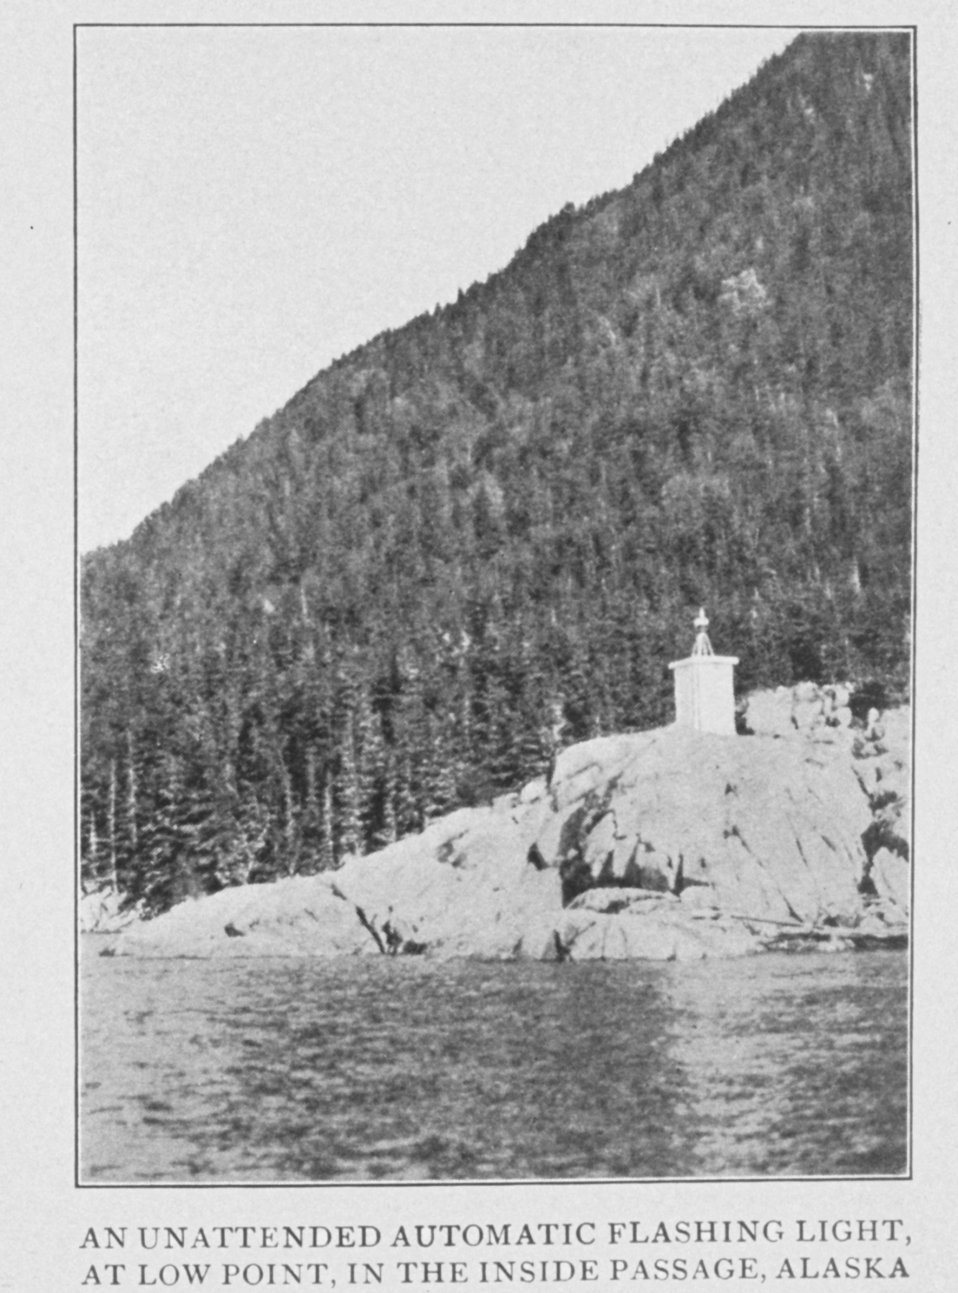 An Unattended Automatic Flashing Light, at Low Point, in the Inside Passage, Alaska. In: 'Lighthouses and Lightships of the United States' by George  R. Putnam, p. 148,  1917.  Houghton Mifflin and Company, Boston. Library Call No. 527.7 P98.